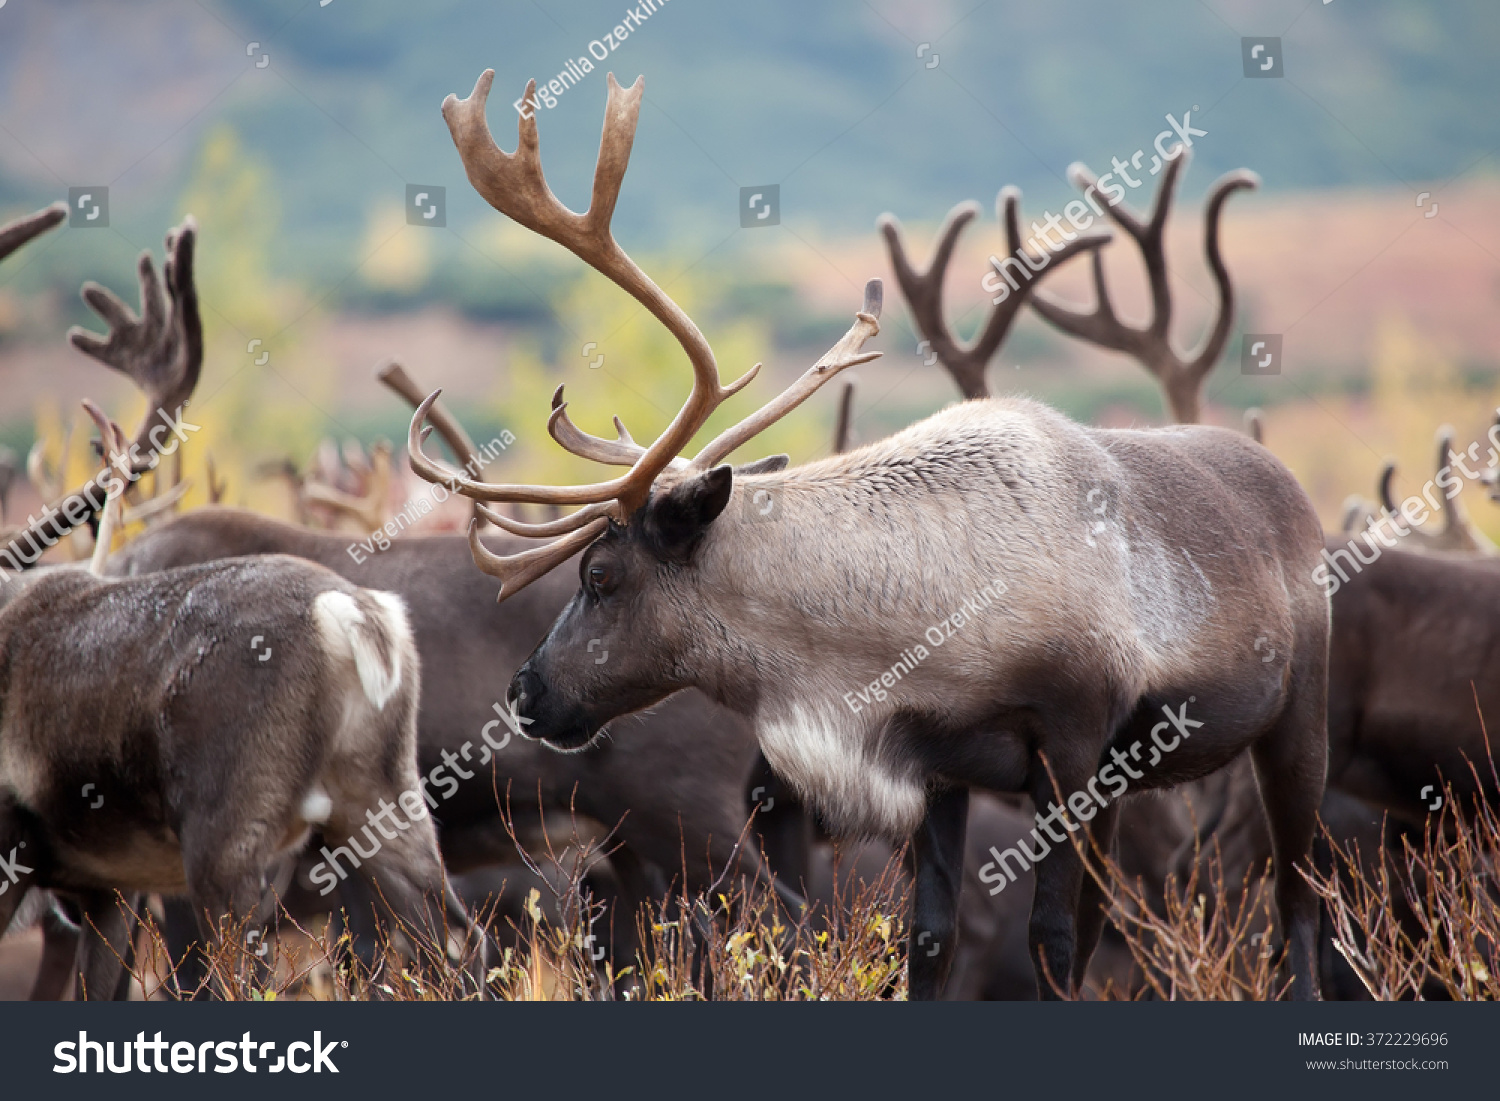 stock-photo-close-up-reindeer-caribou-in